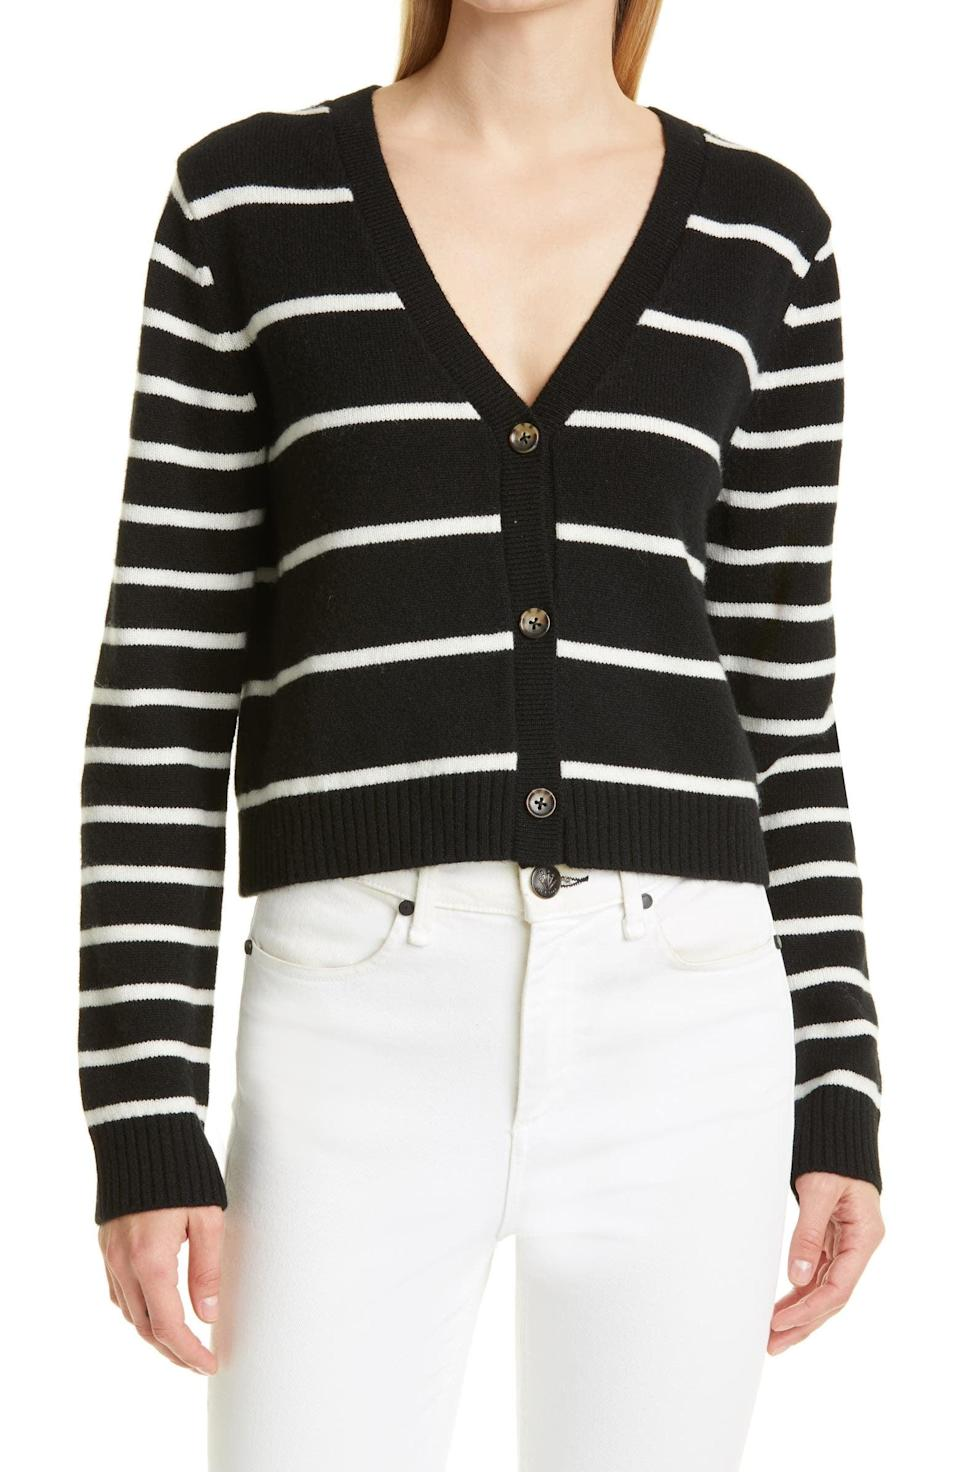 <p>Cashmere is always a good idea. This <span>La Ligne Stripe Cashmere Crop Cardigan</span> ($295) is so luxurious and will go with pretty much anything.</p>